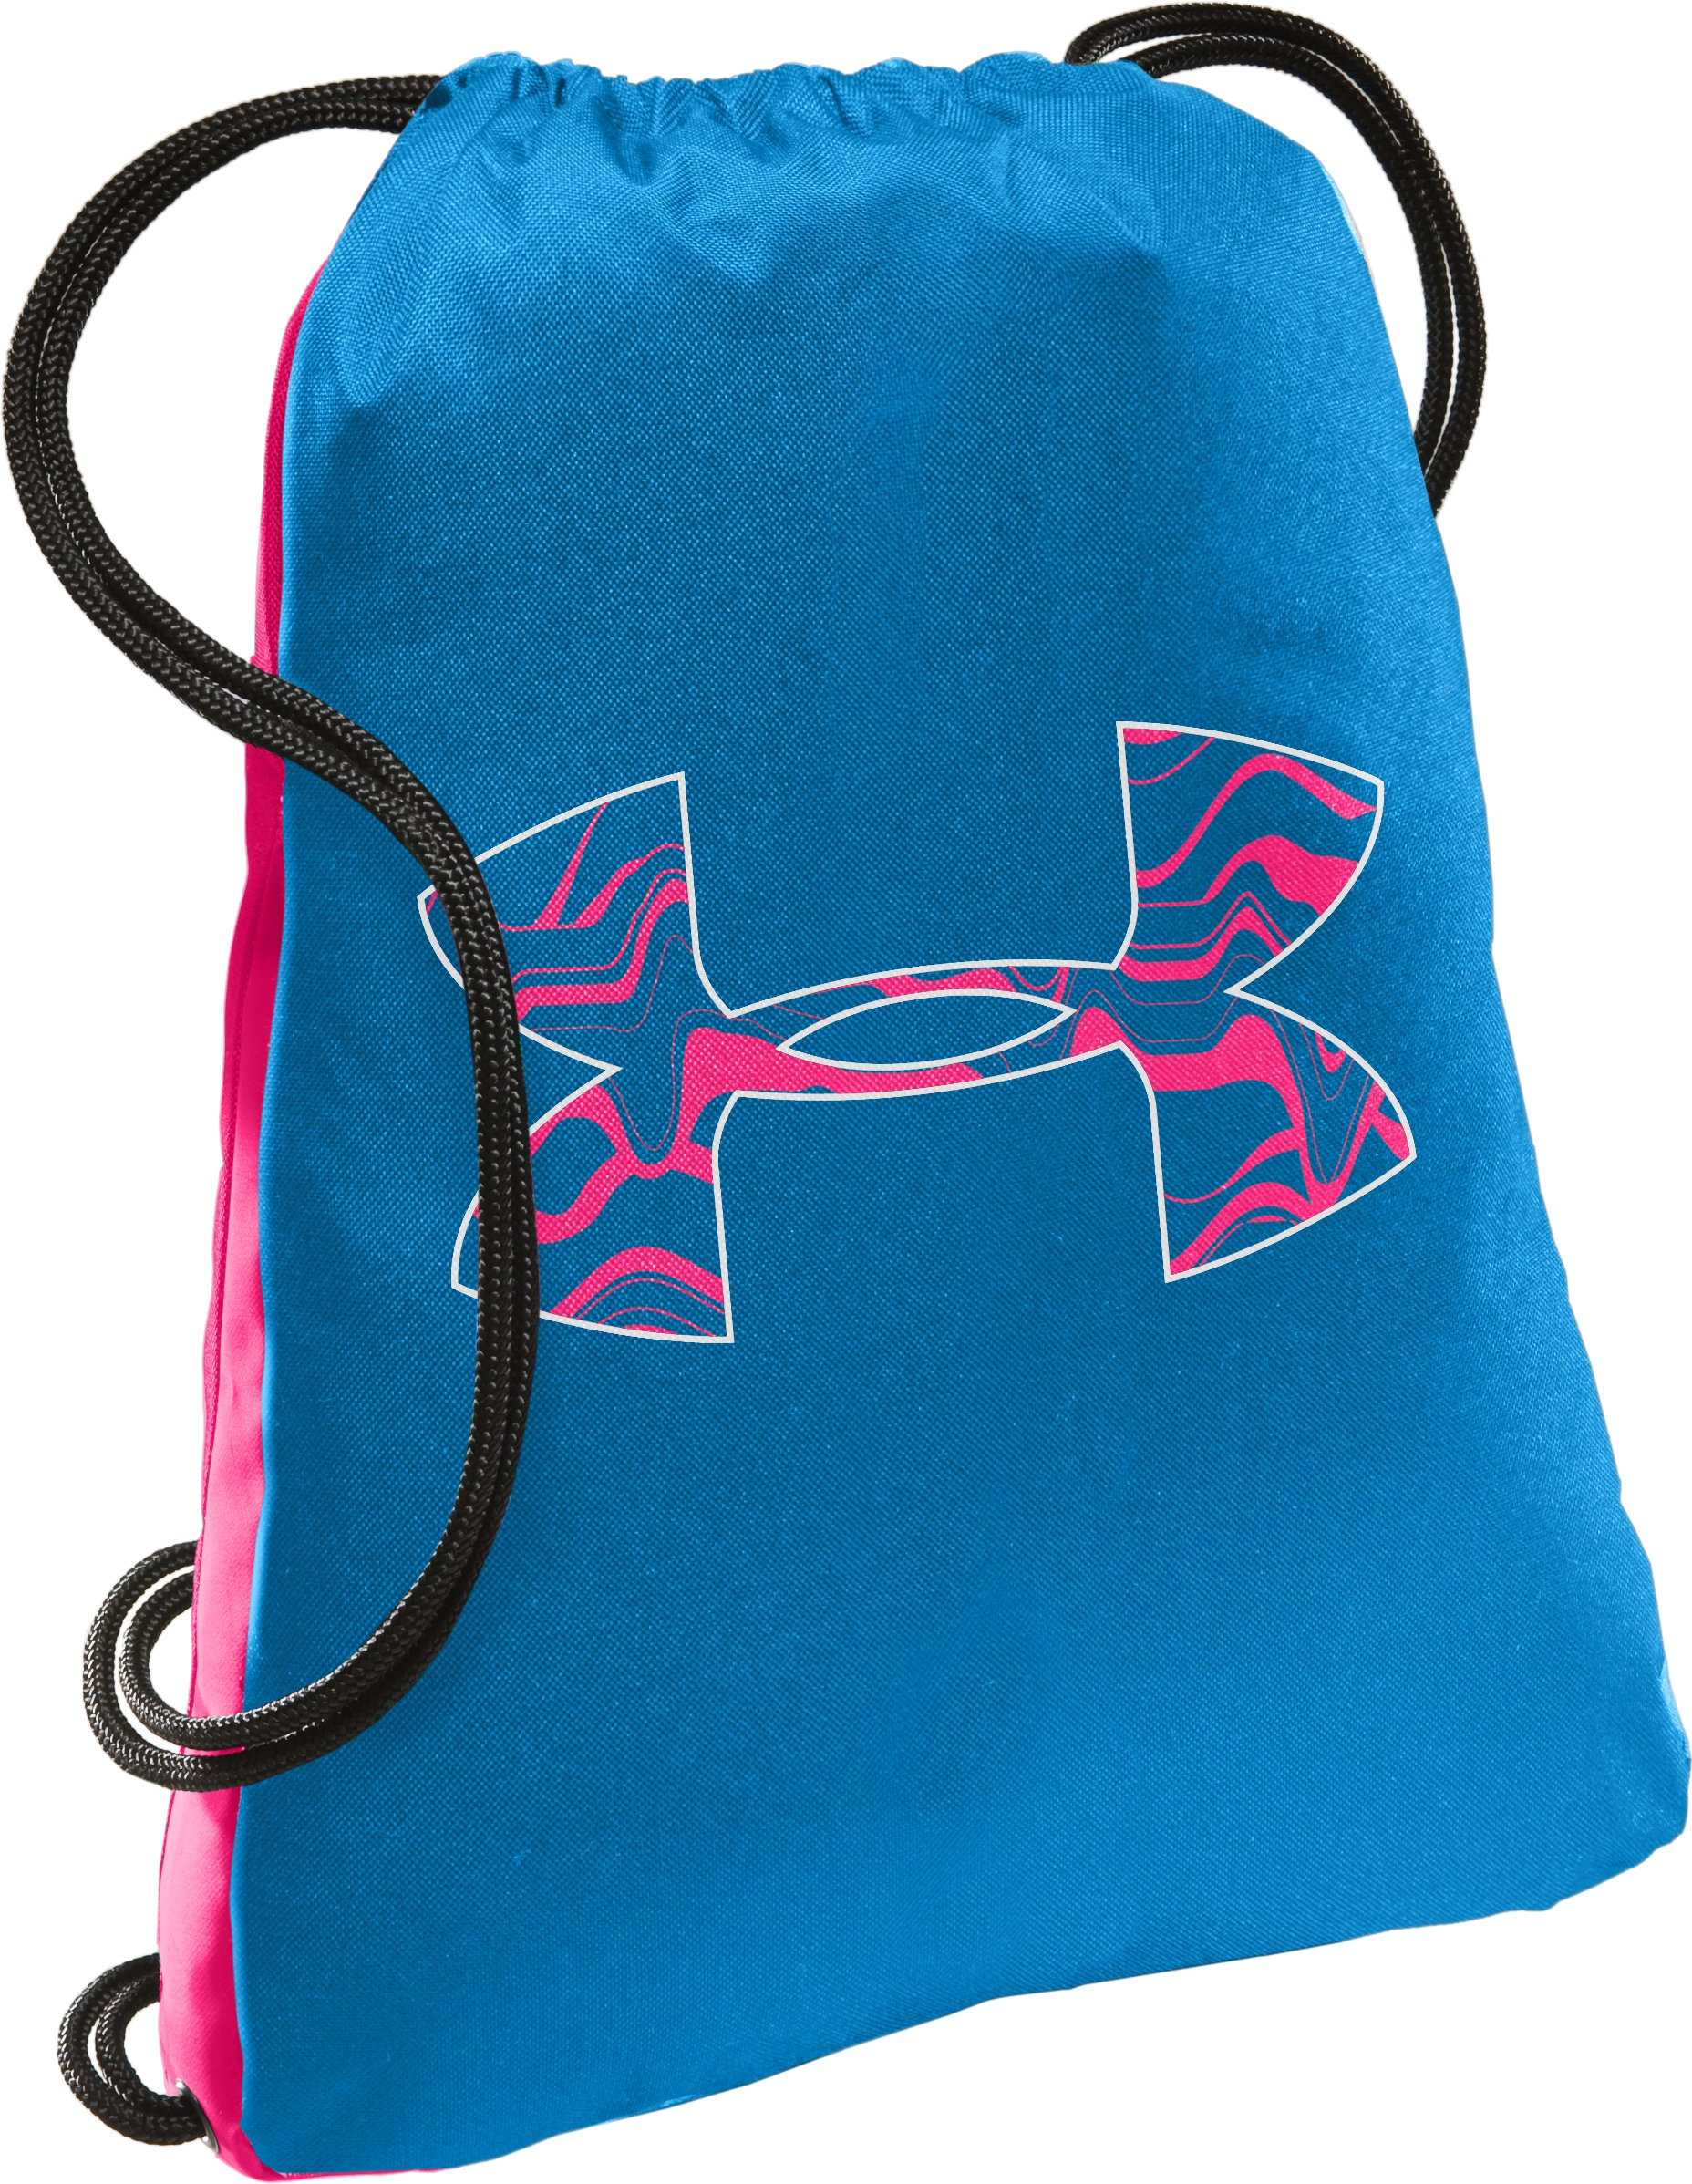 UA Tyro Courage Sackpack, Pool